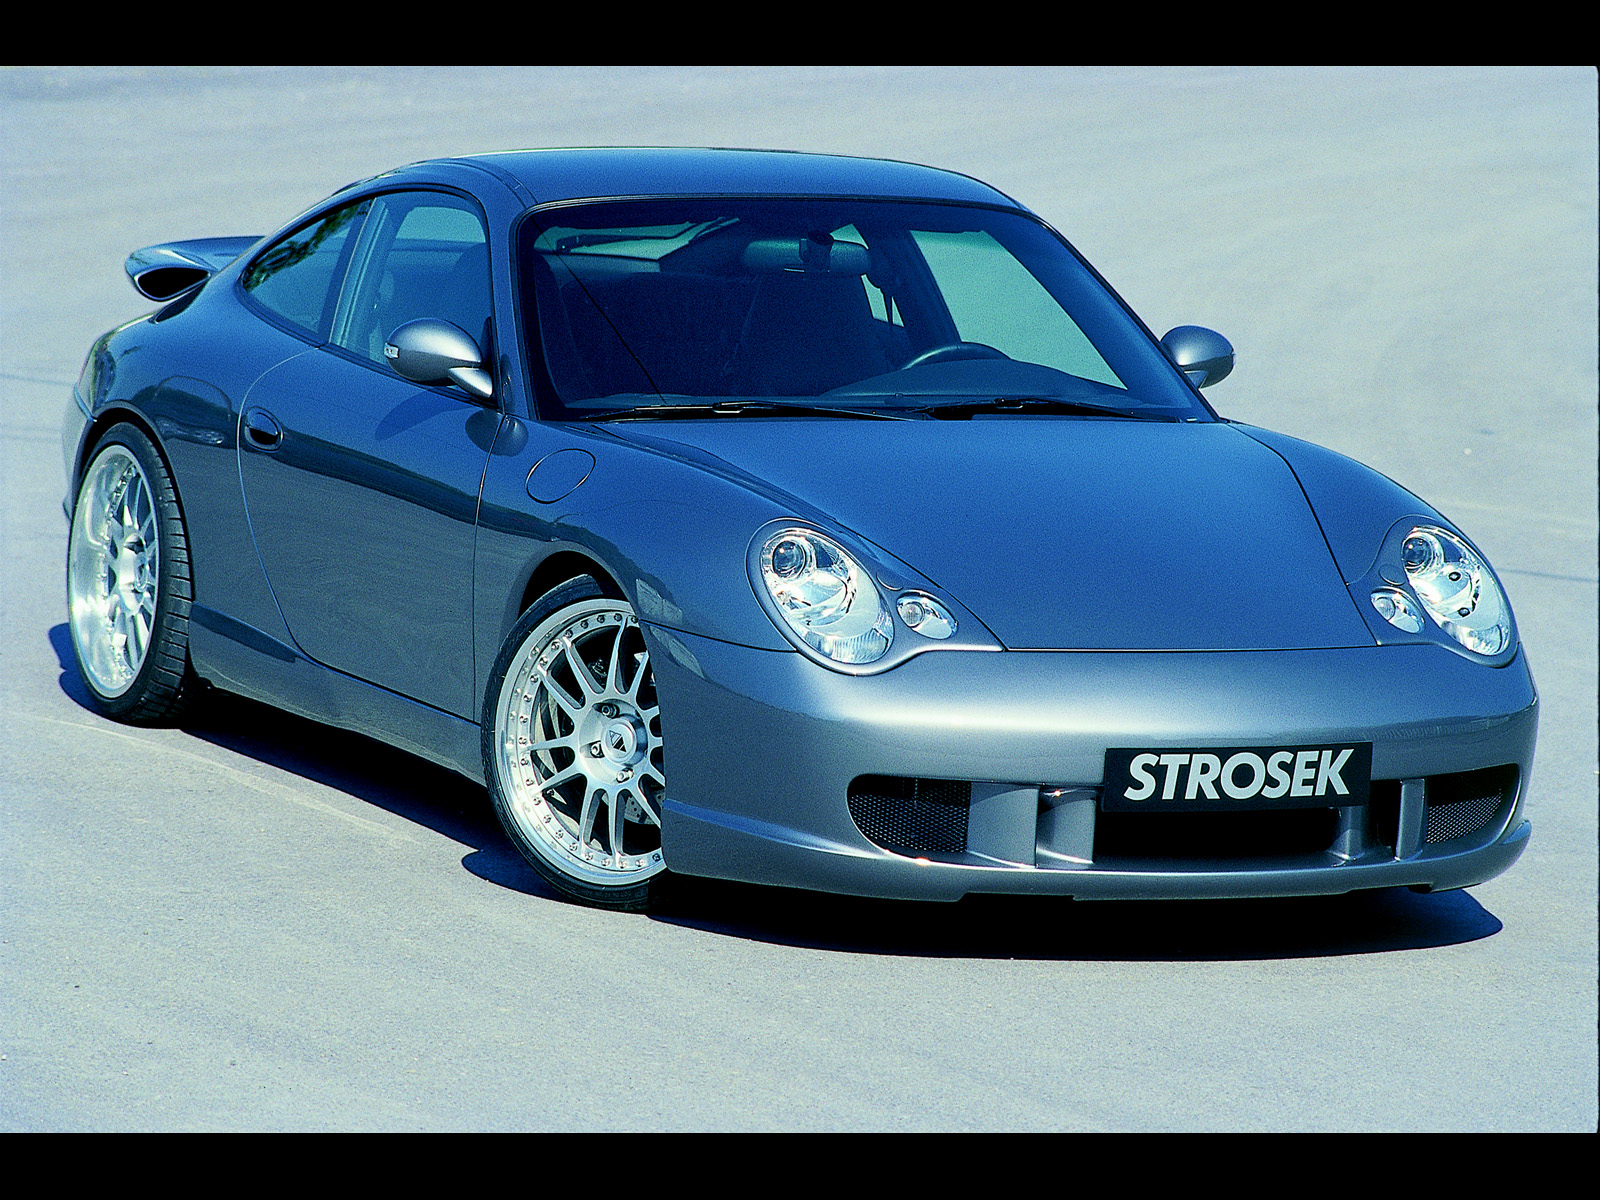 Strosek Porsche 996 911 Carrera photo 35374